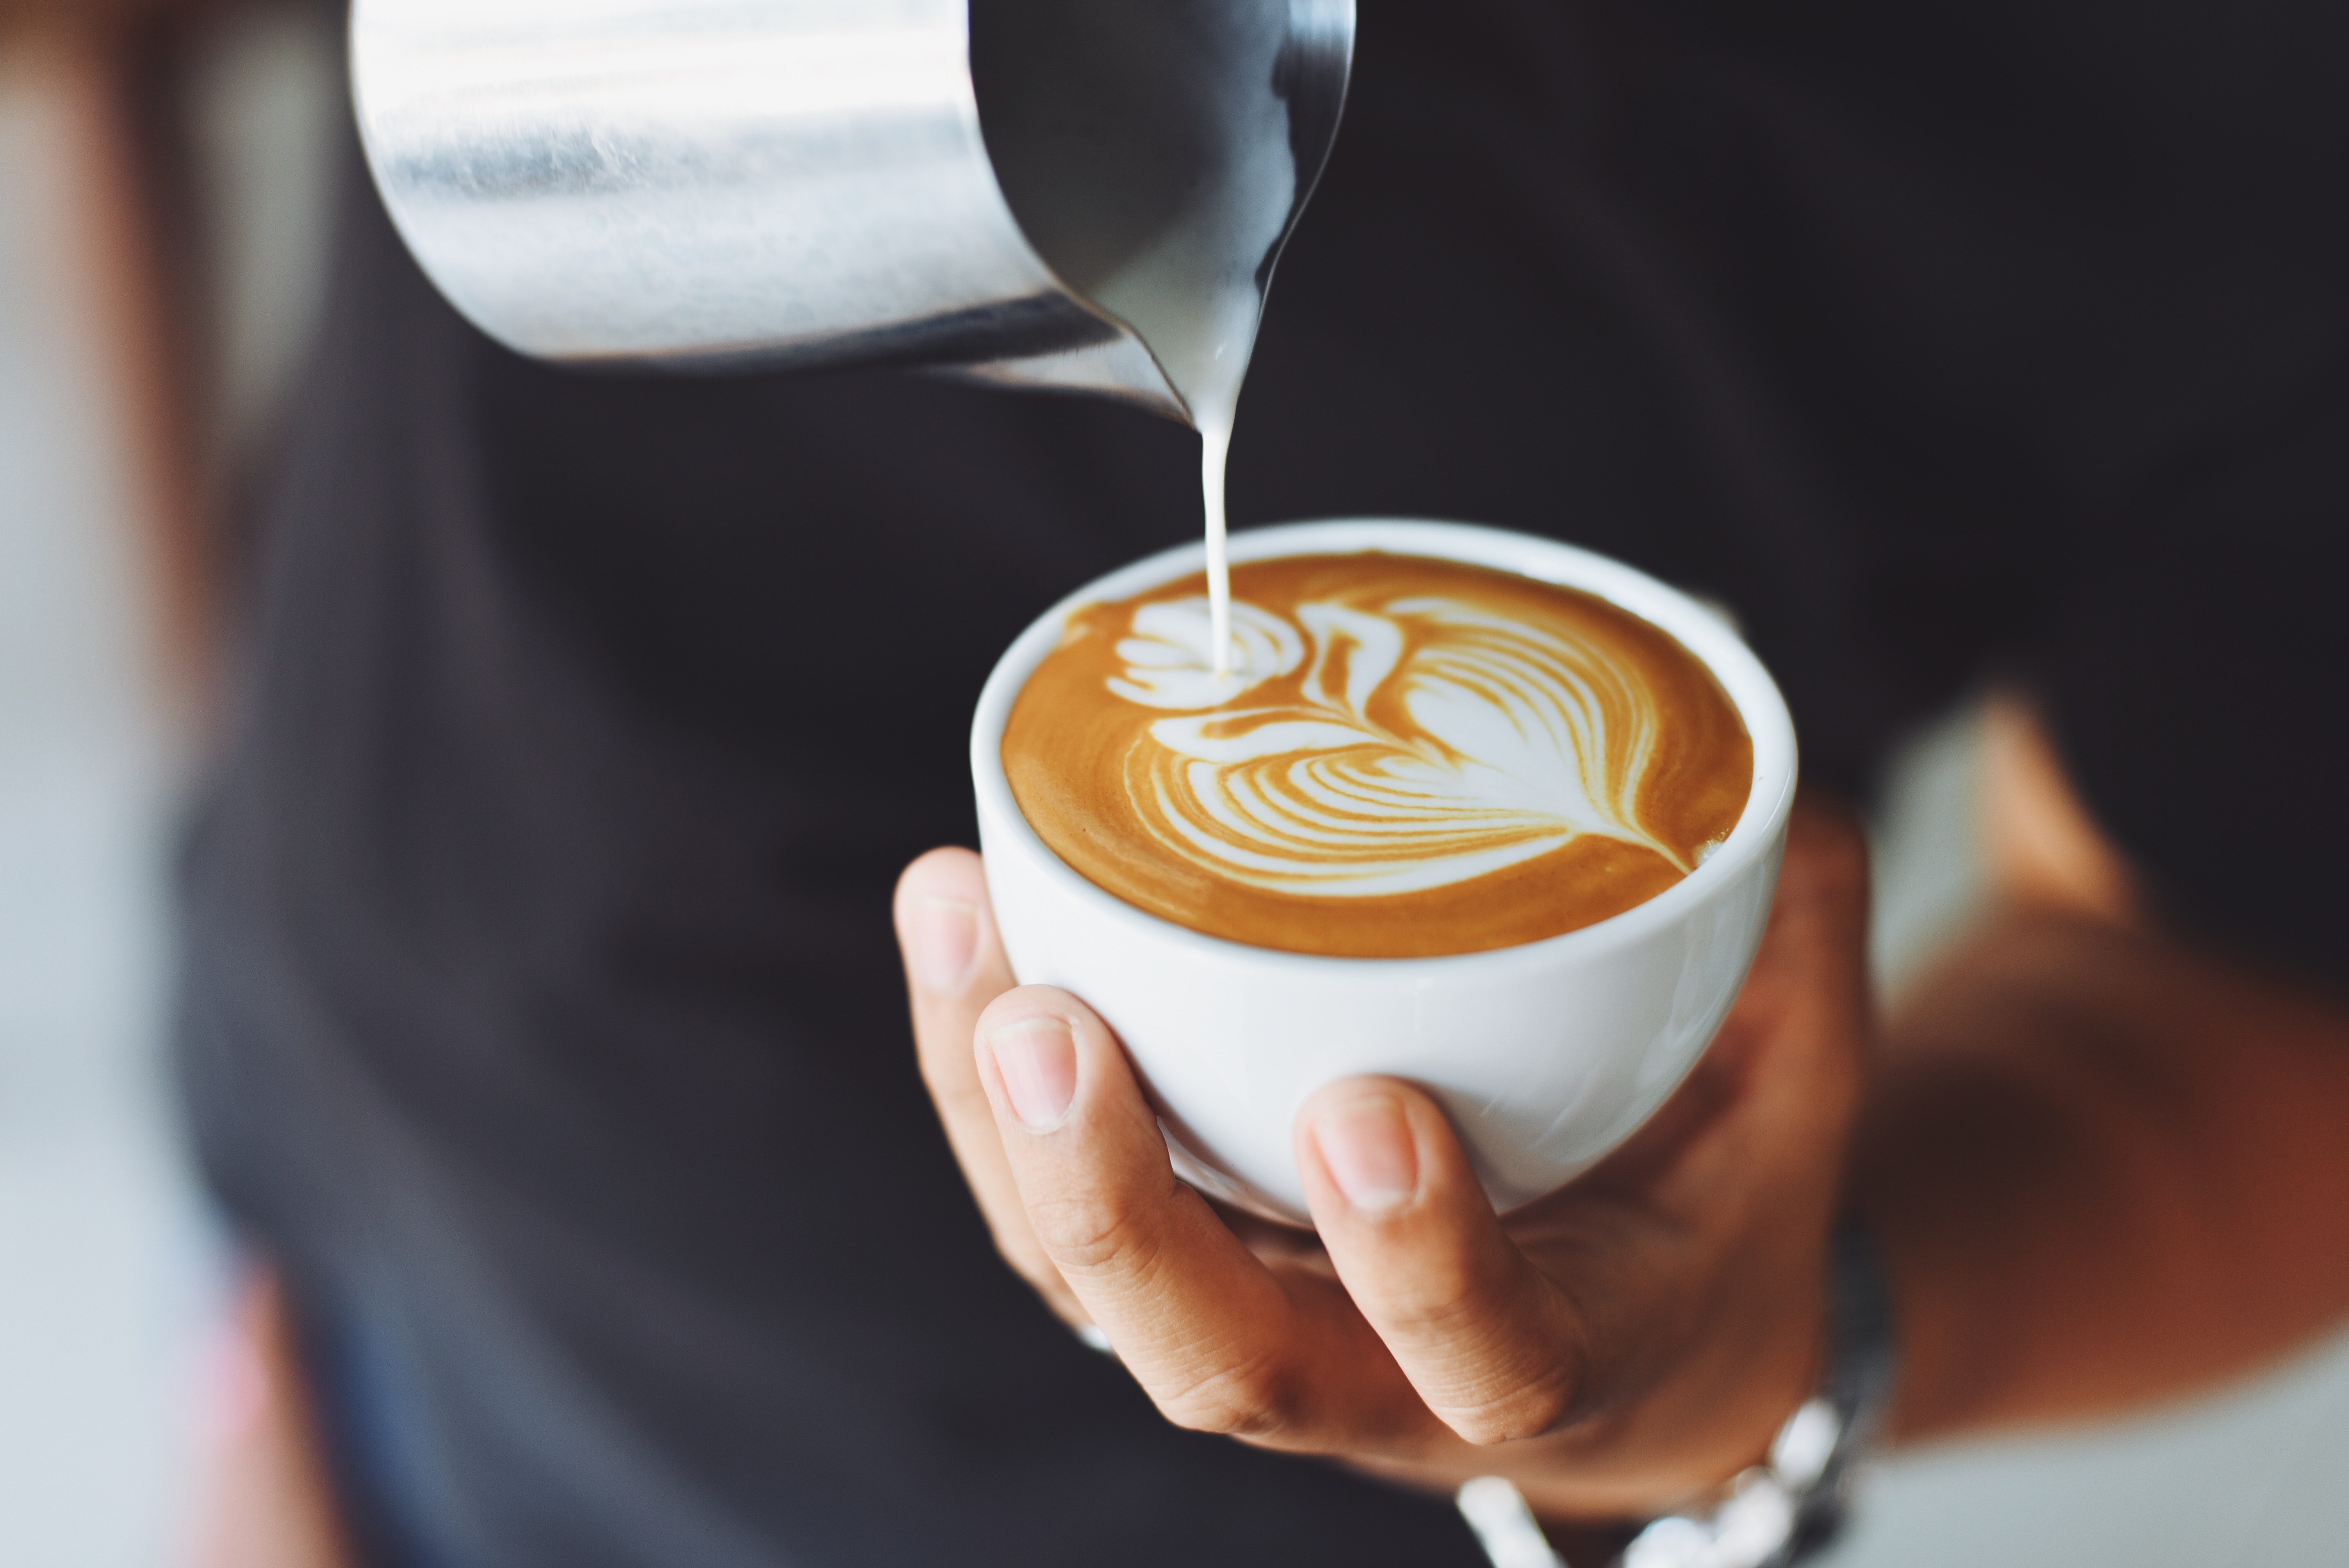 A barista holds a white cappuccino cup and pours perfectly textured milk into espresso.